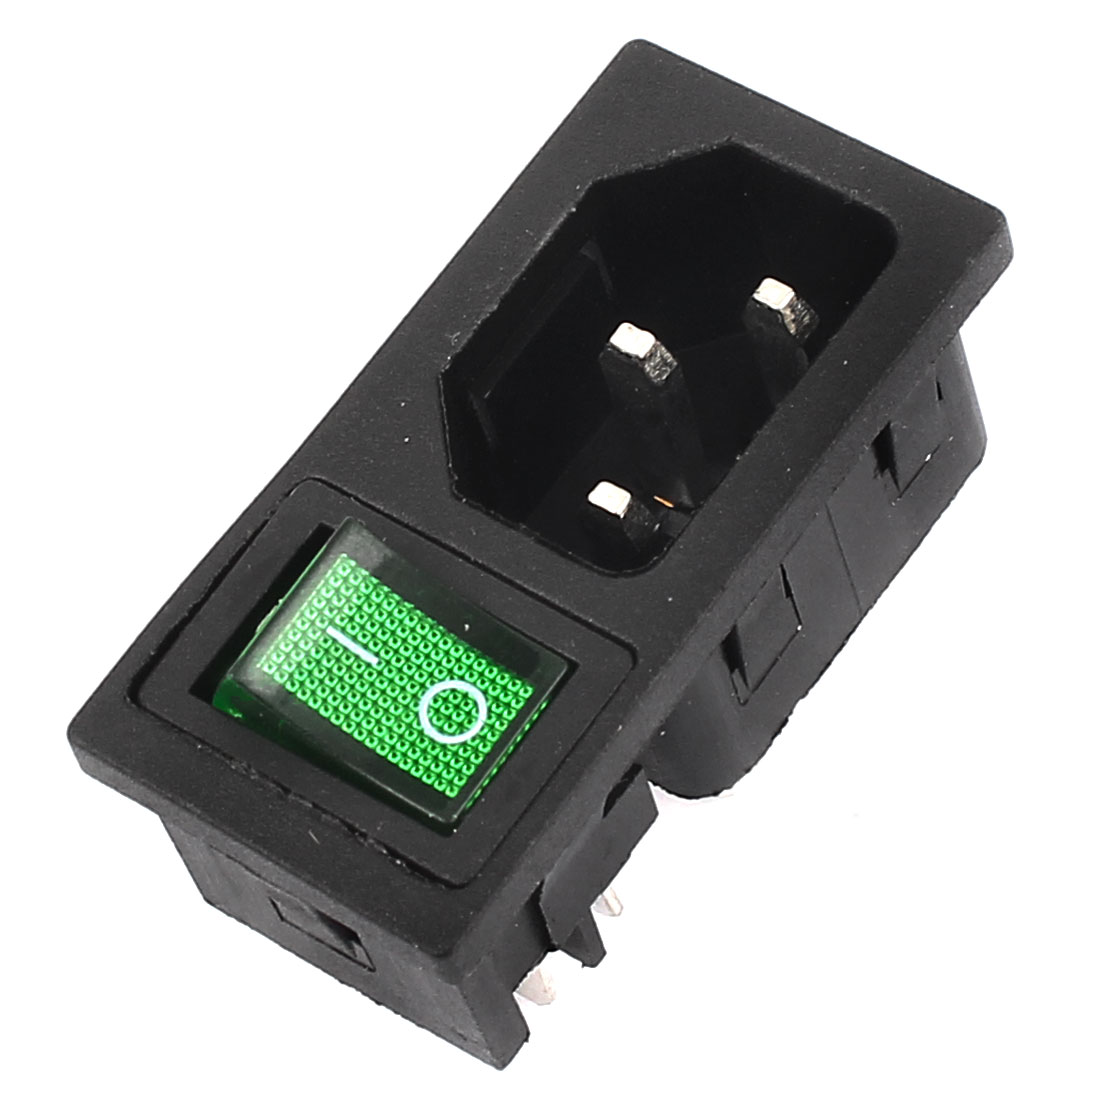 IEC320 C14 AC 250V 10A Green Light Rocker Switch Inlet Connector